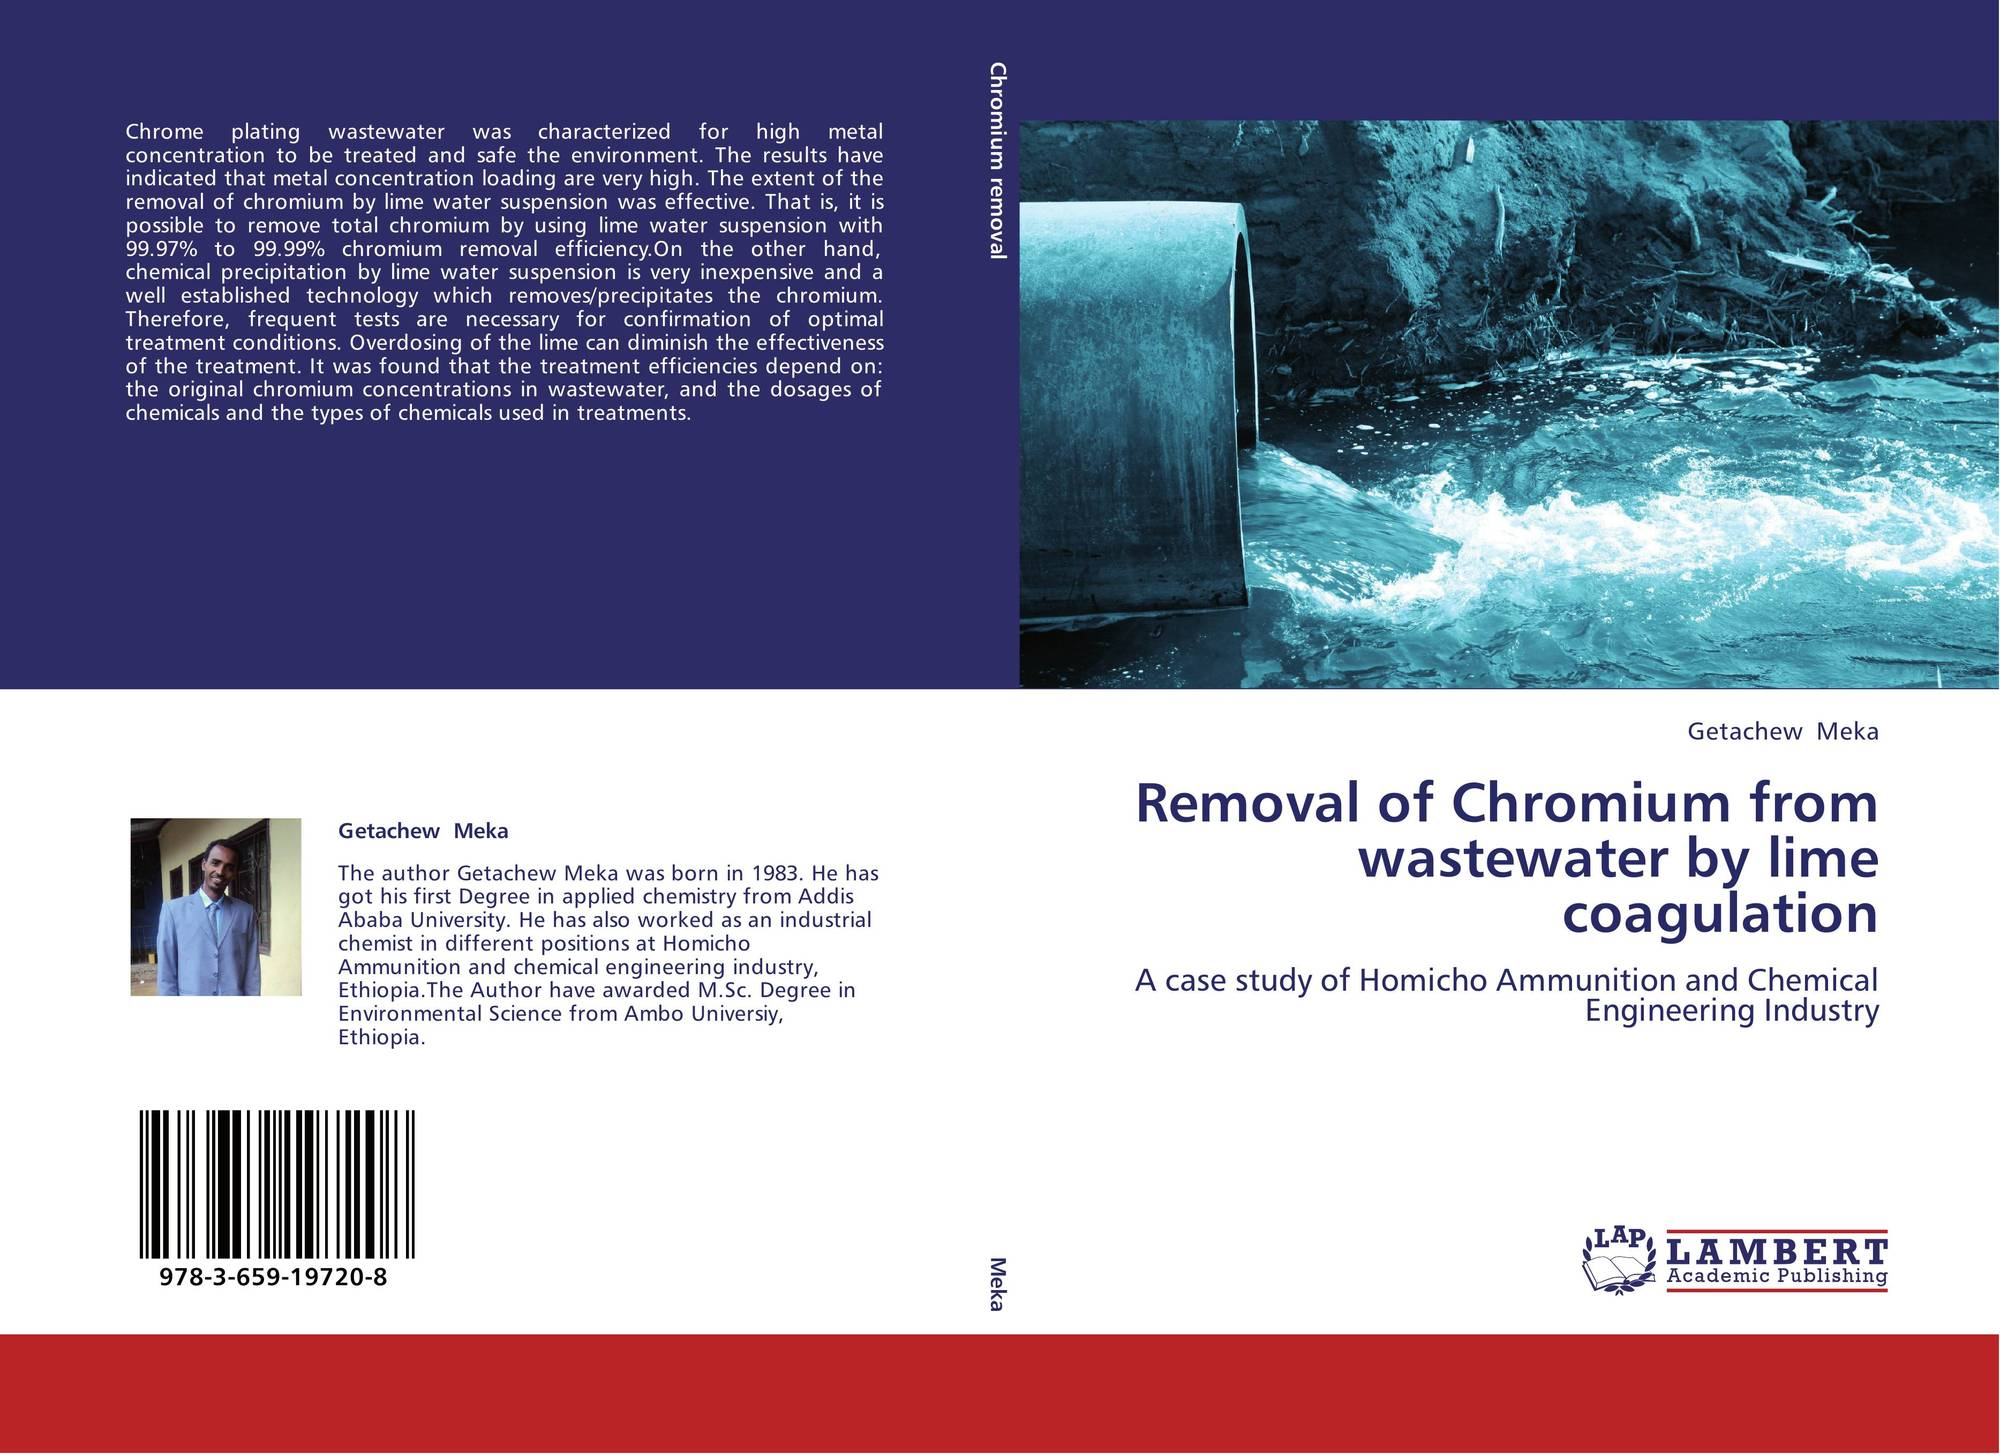 bookcover of removal of chromium from wastewater by lime coagulation